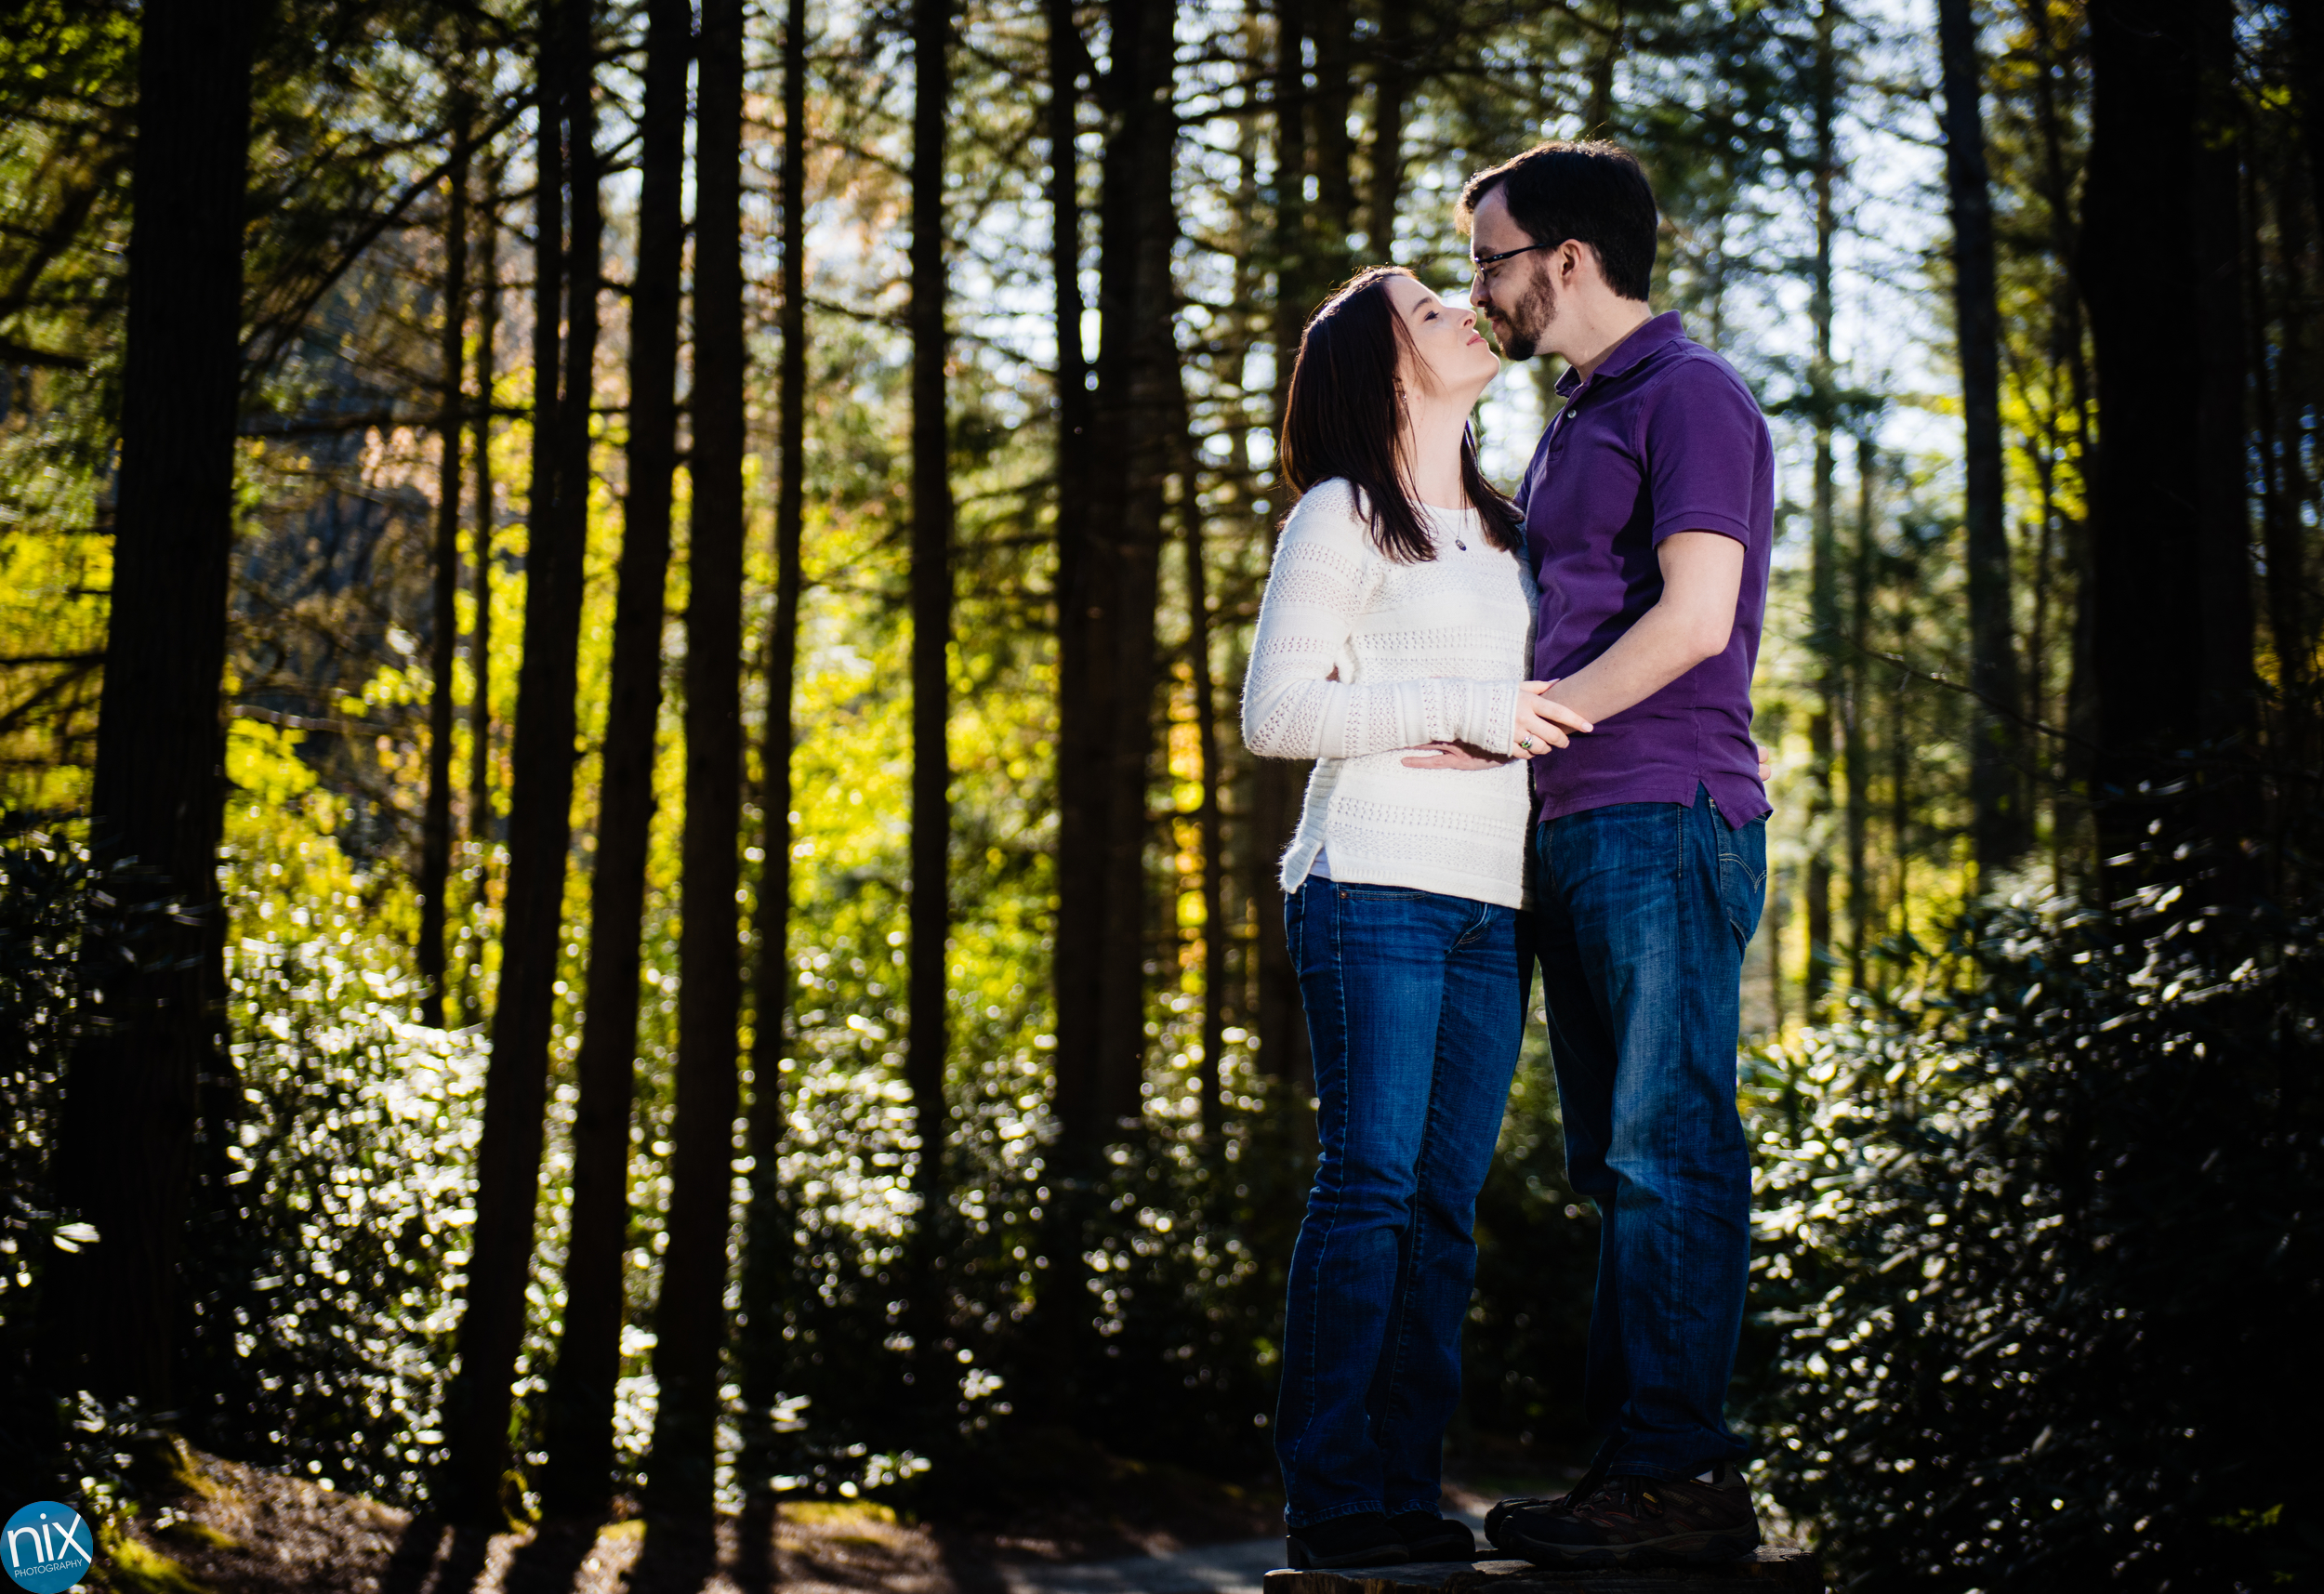 engagement-photography-outside-in-forest.jpg